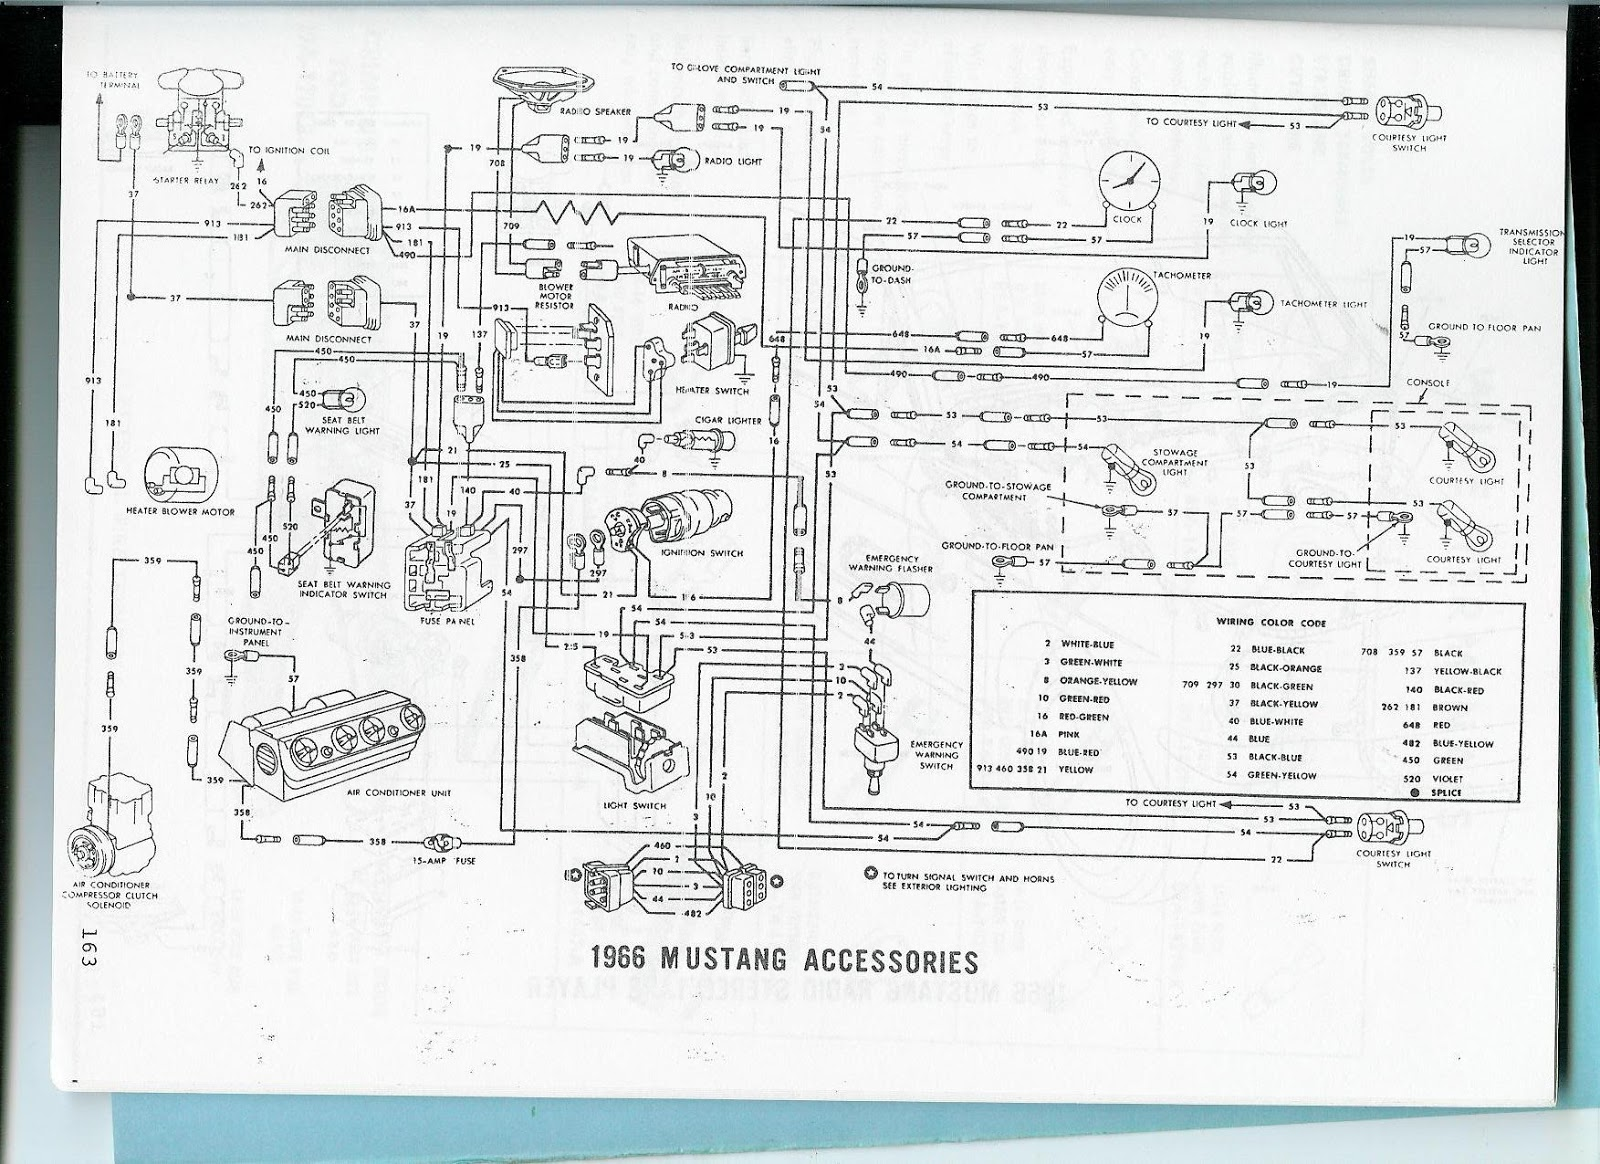 1966 ford mustang engine diagram | wiring library 1966 mustang wiring diagram pdf